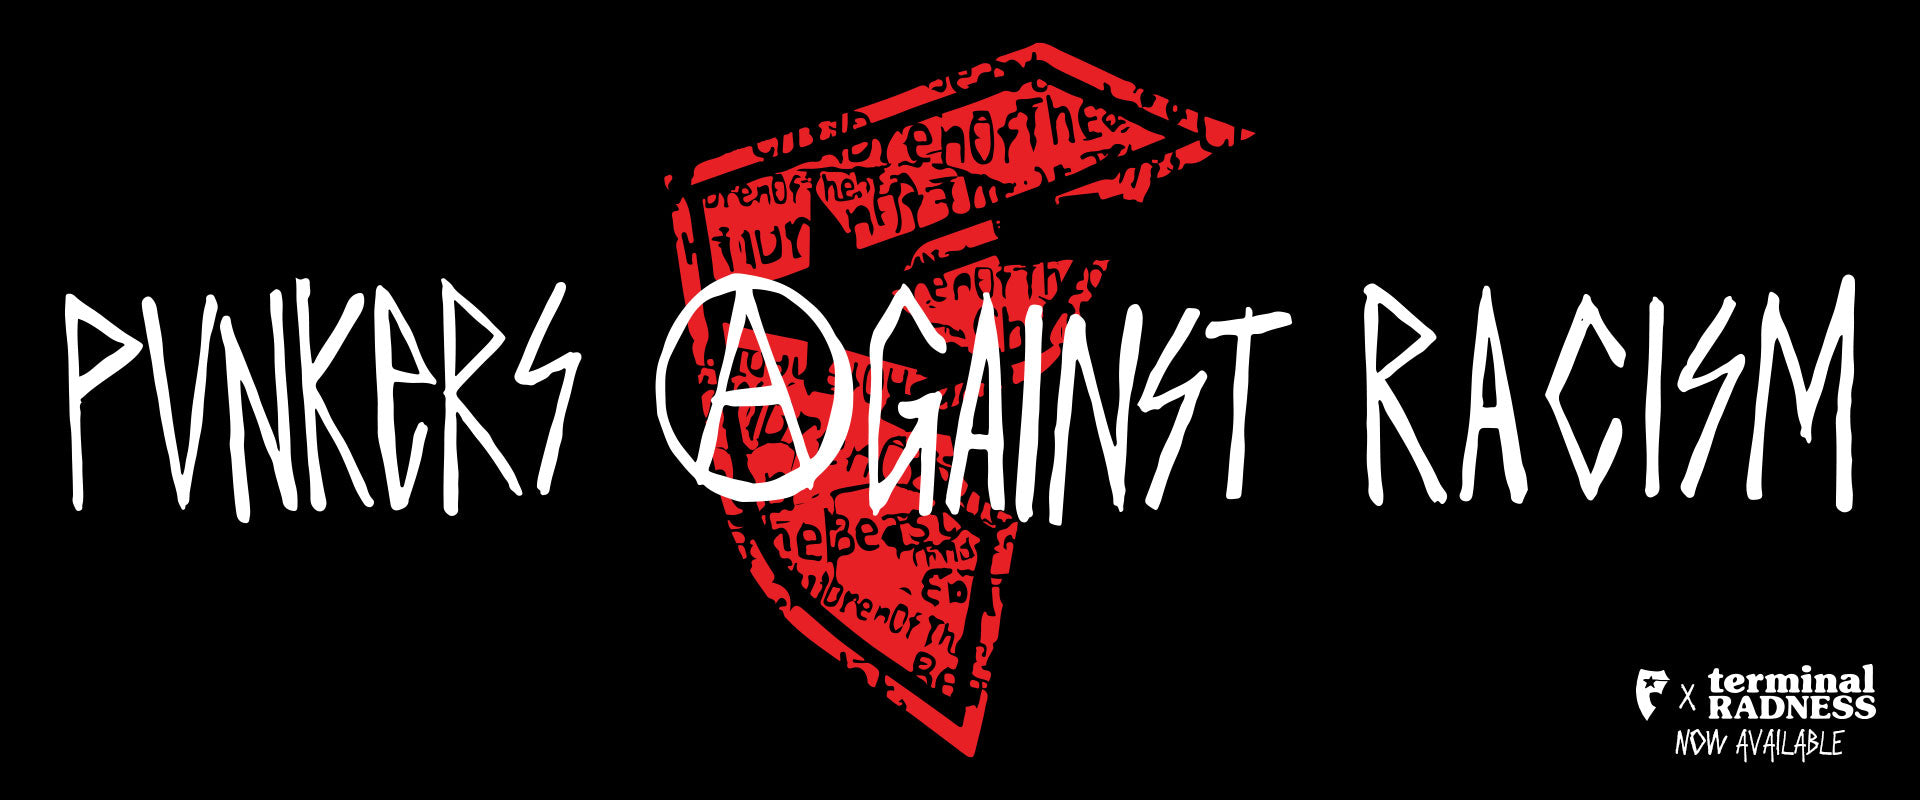 Punkers Against Racism